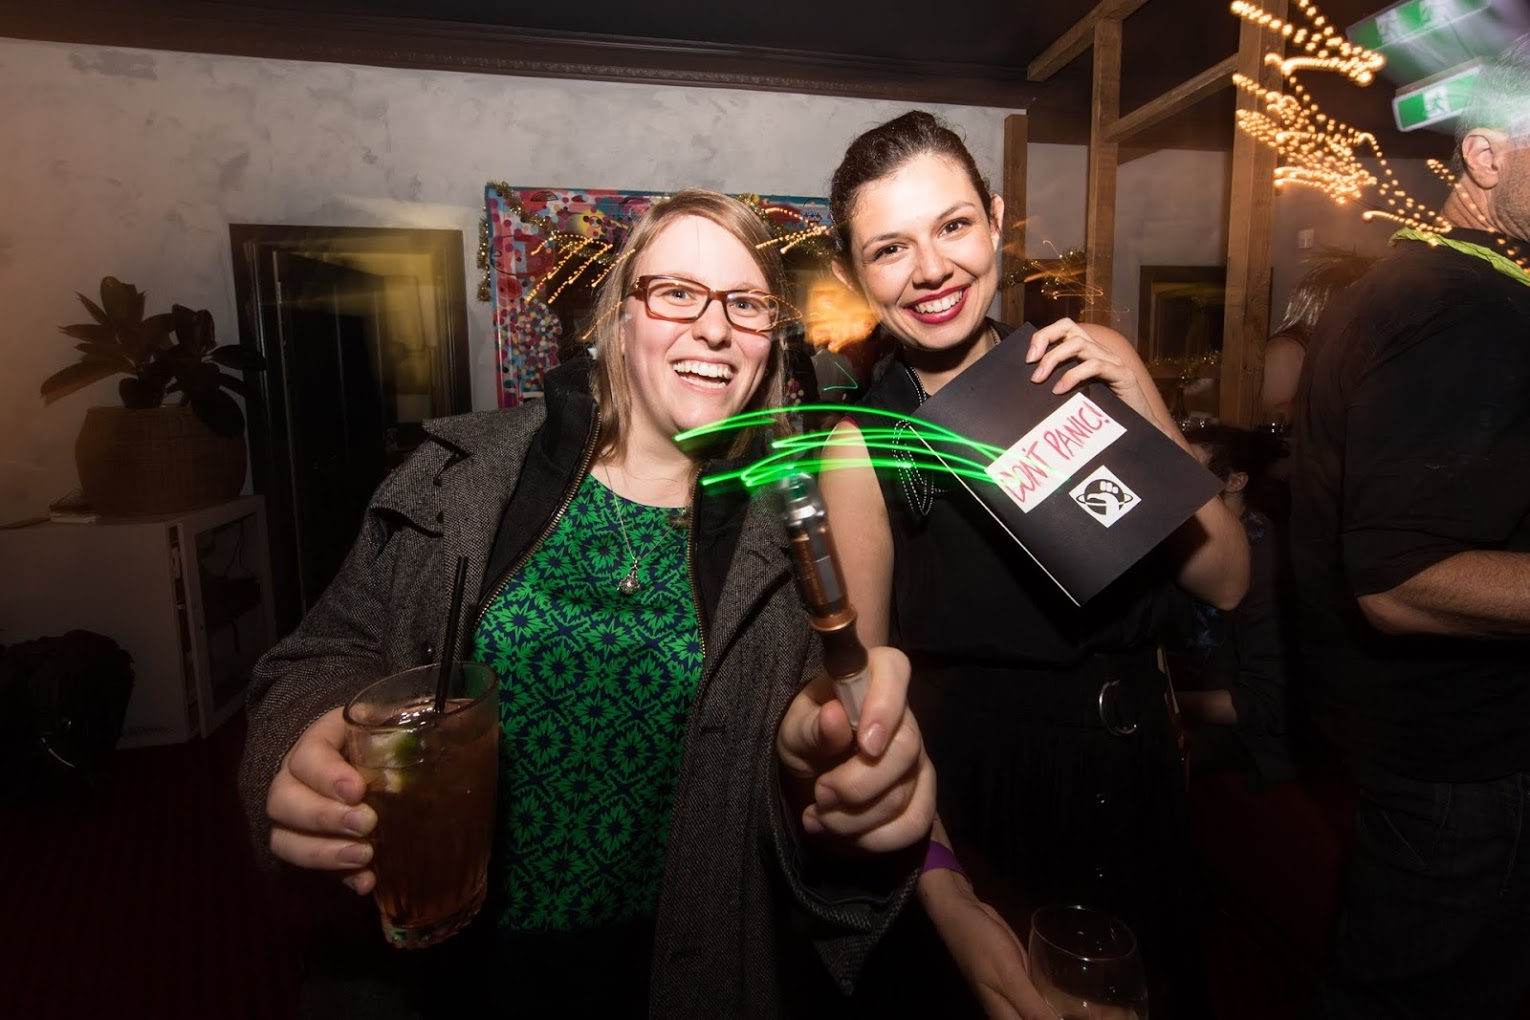 20171211_Flying Bark_Christmas Party_Photographer_Daniele Massacci_Web-6420.jpg